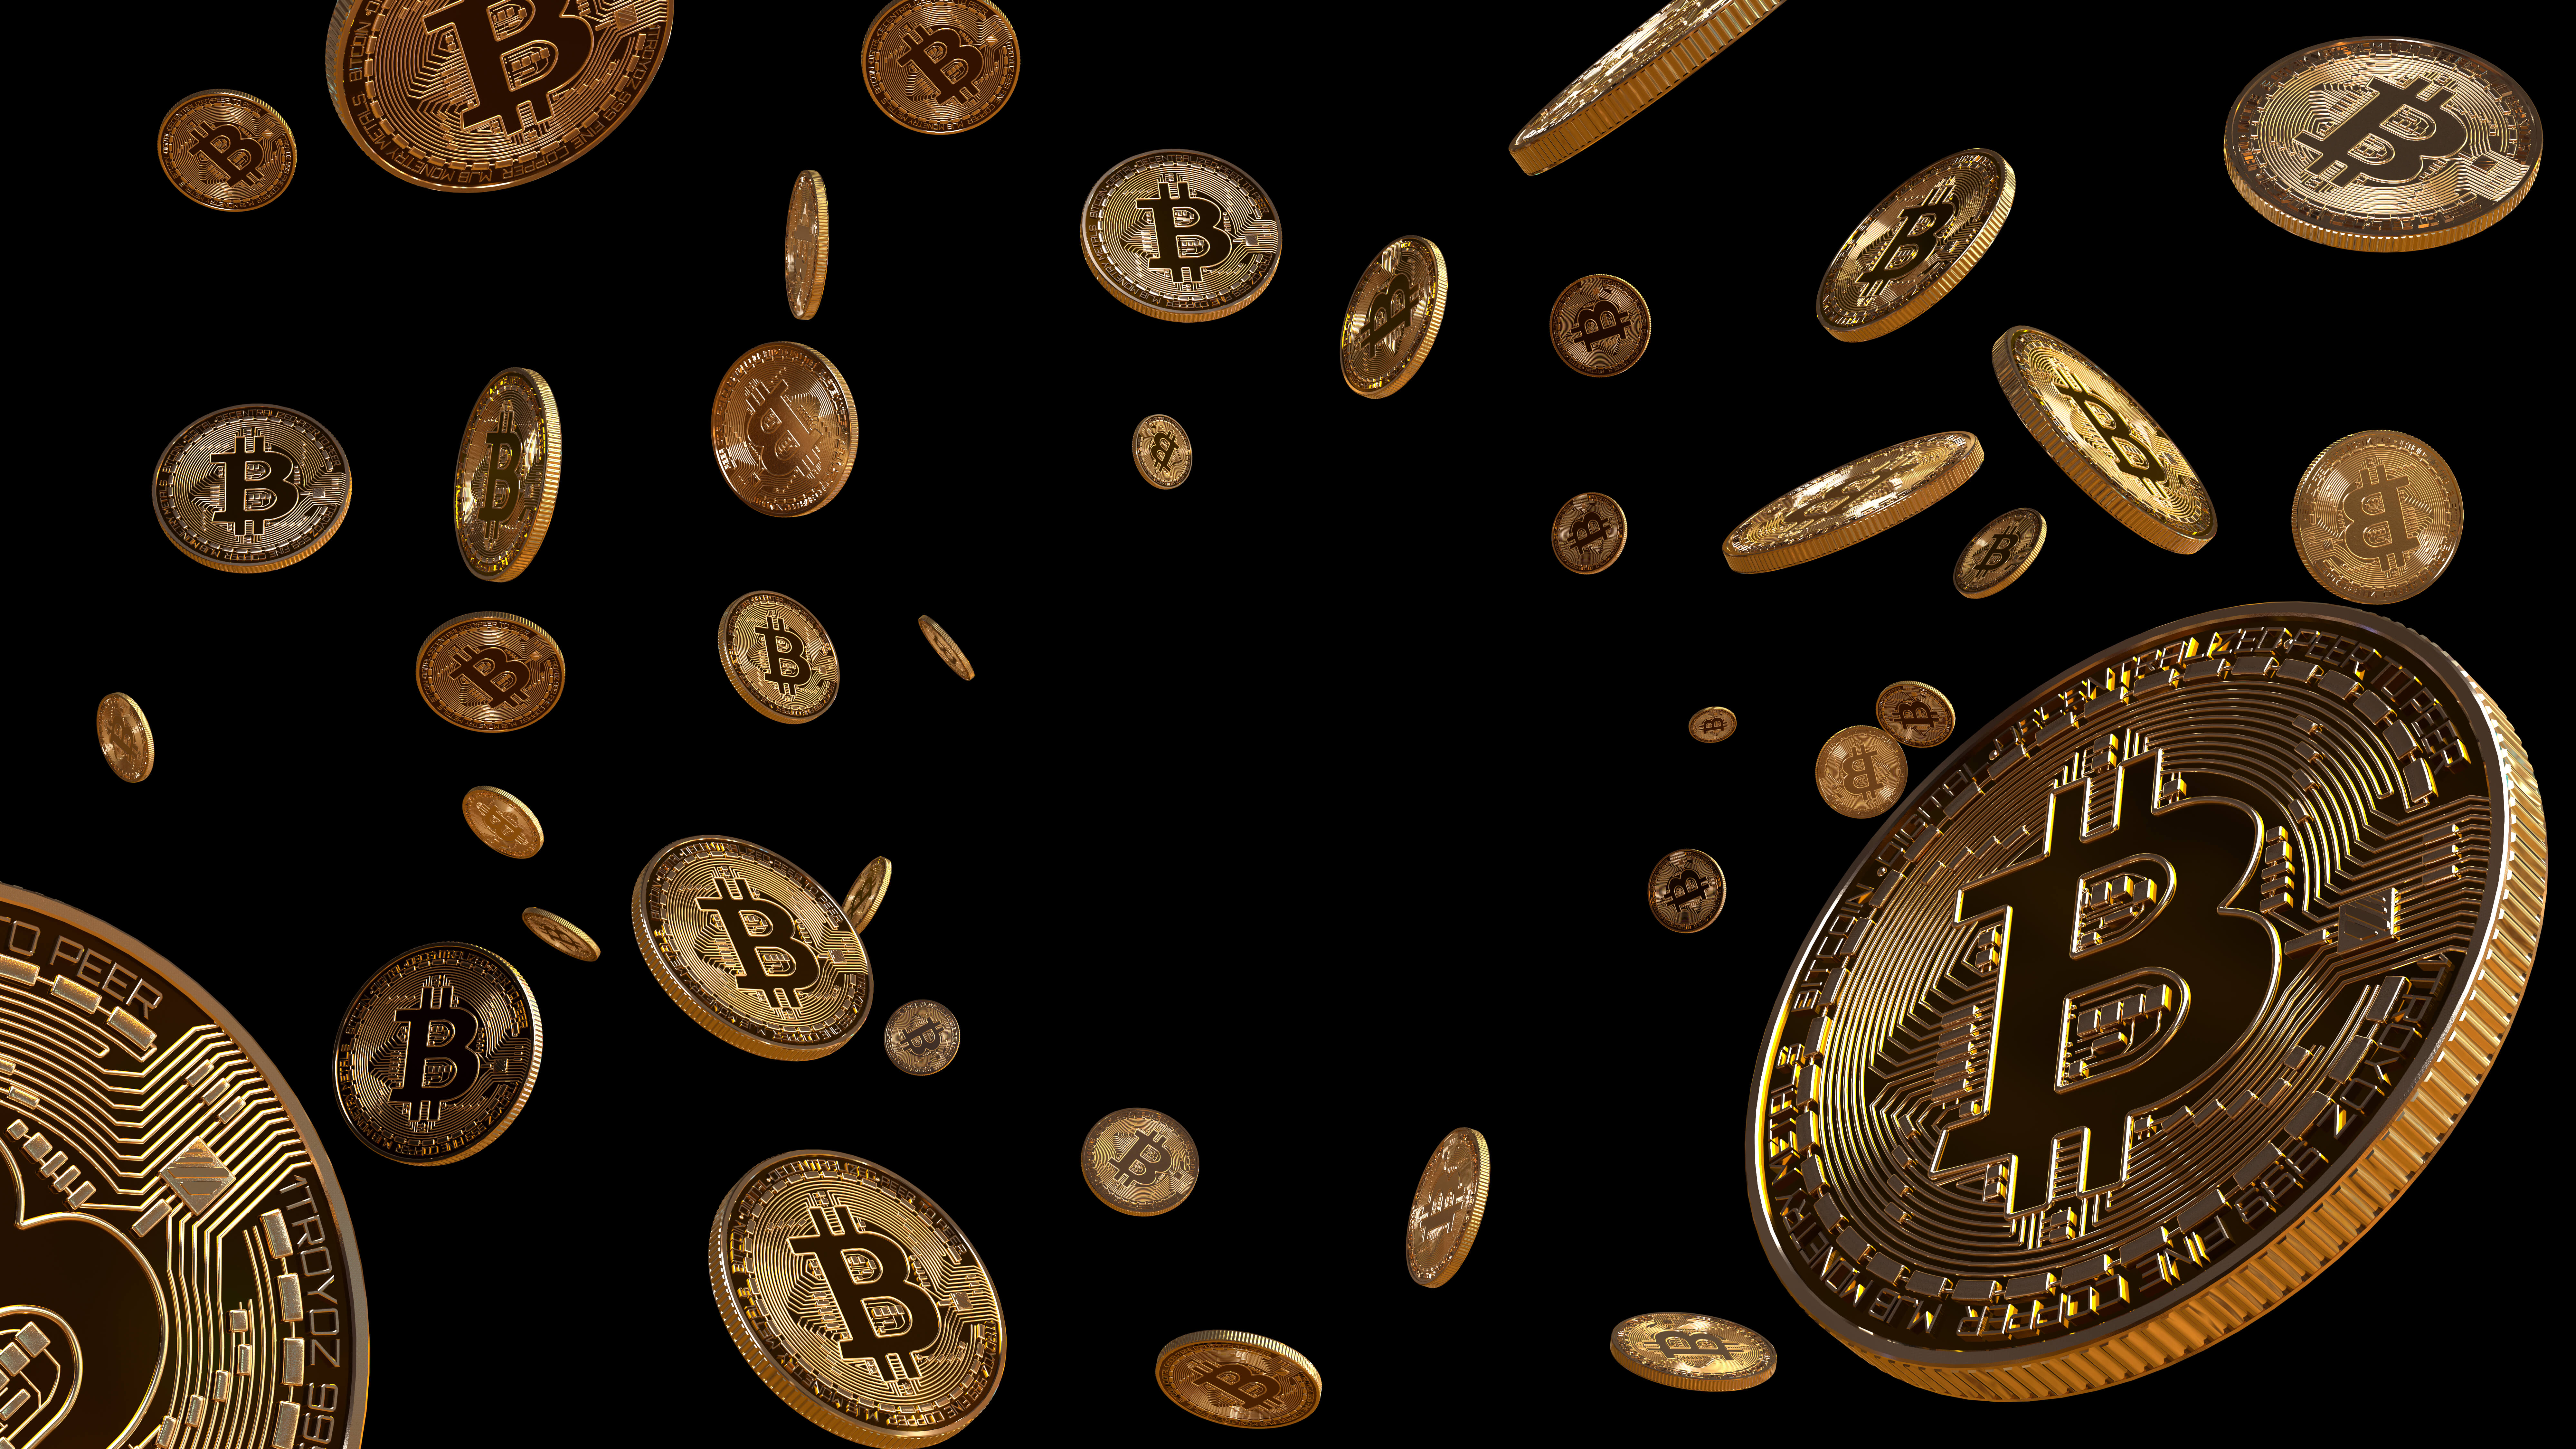 bitcoin value at the highest in 15 months